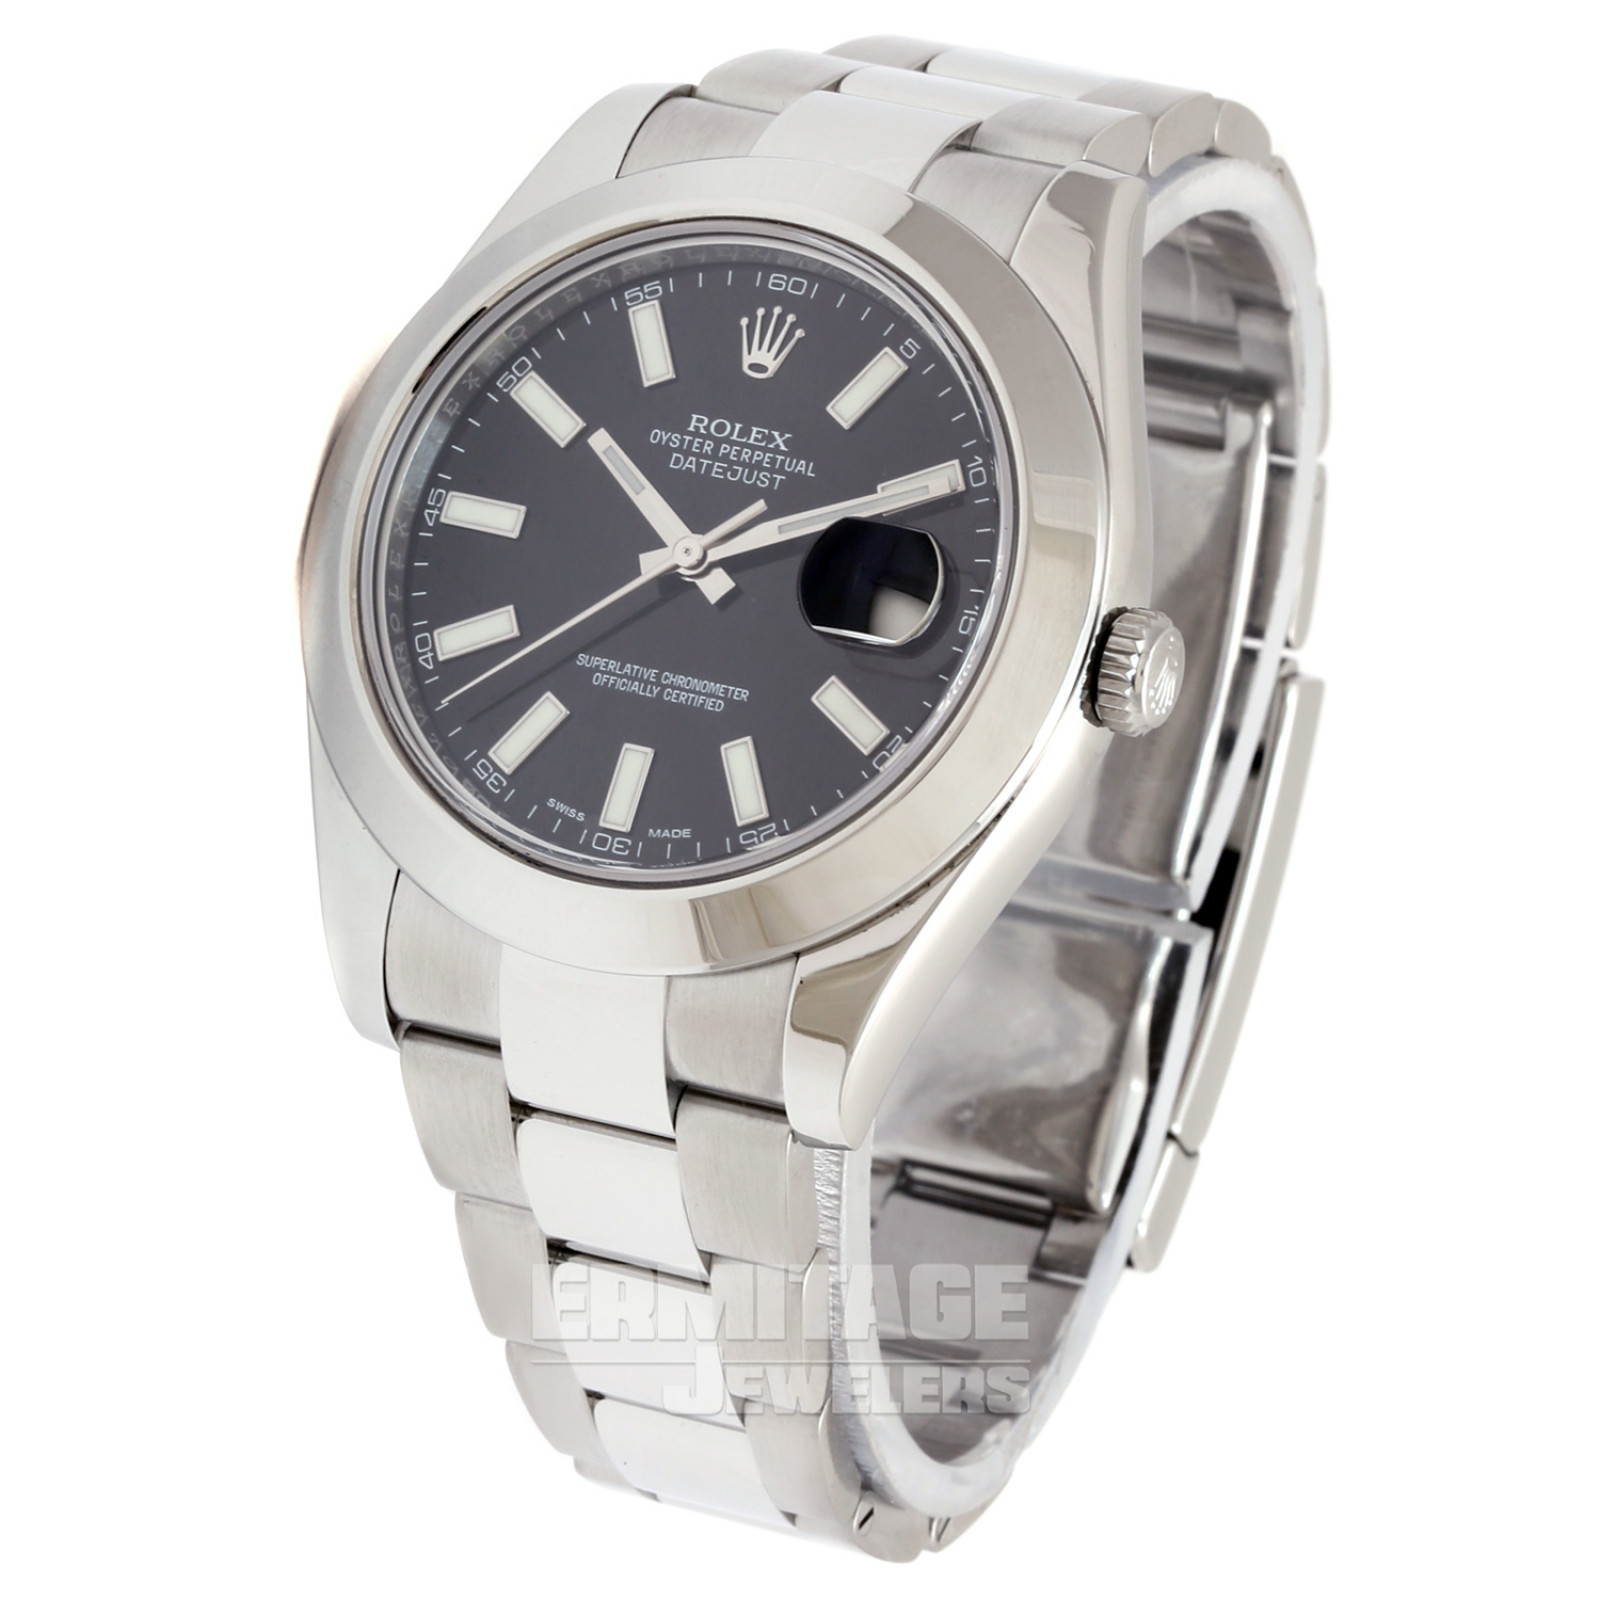 Pre-Owned Stainless Steel Rolex Datejust41 116300 with Black Dial